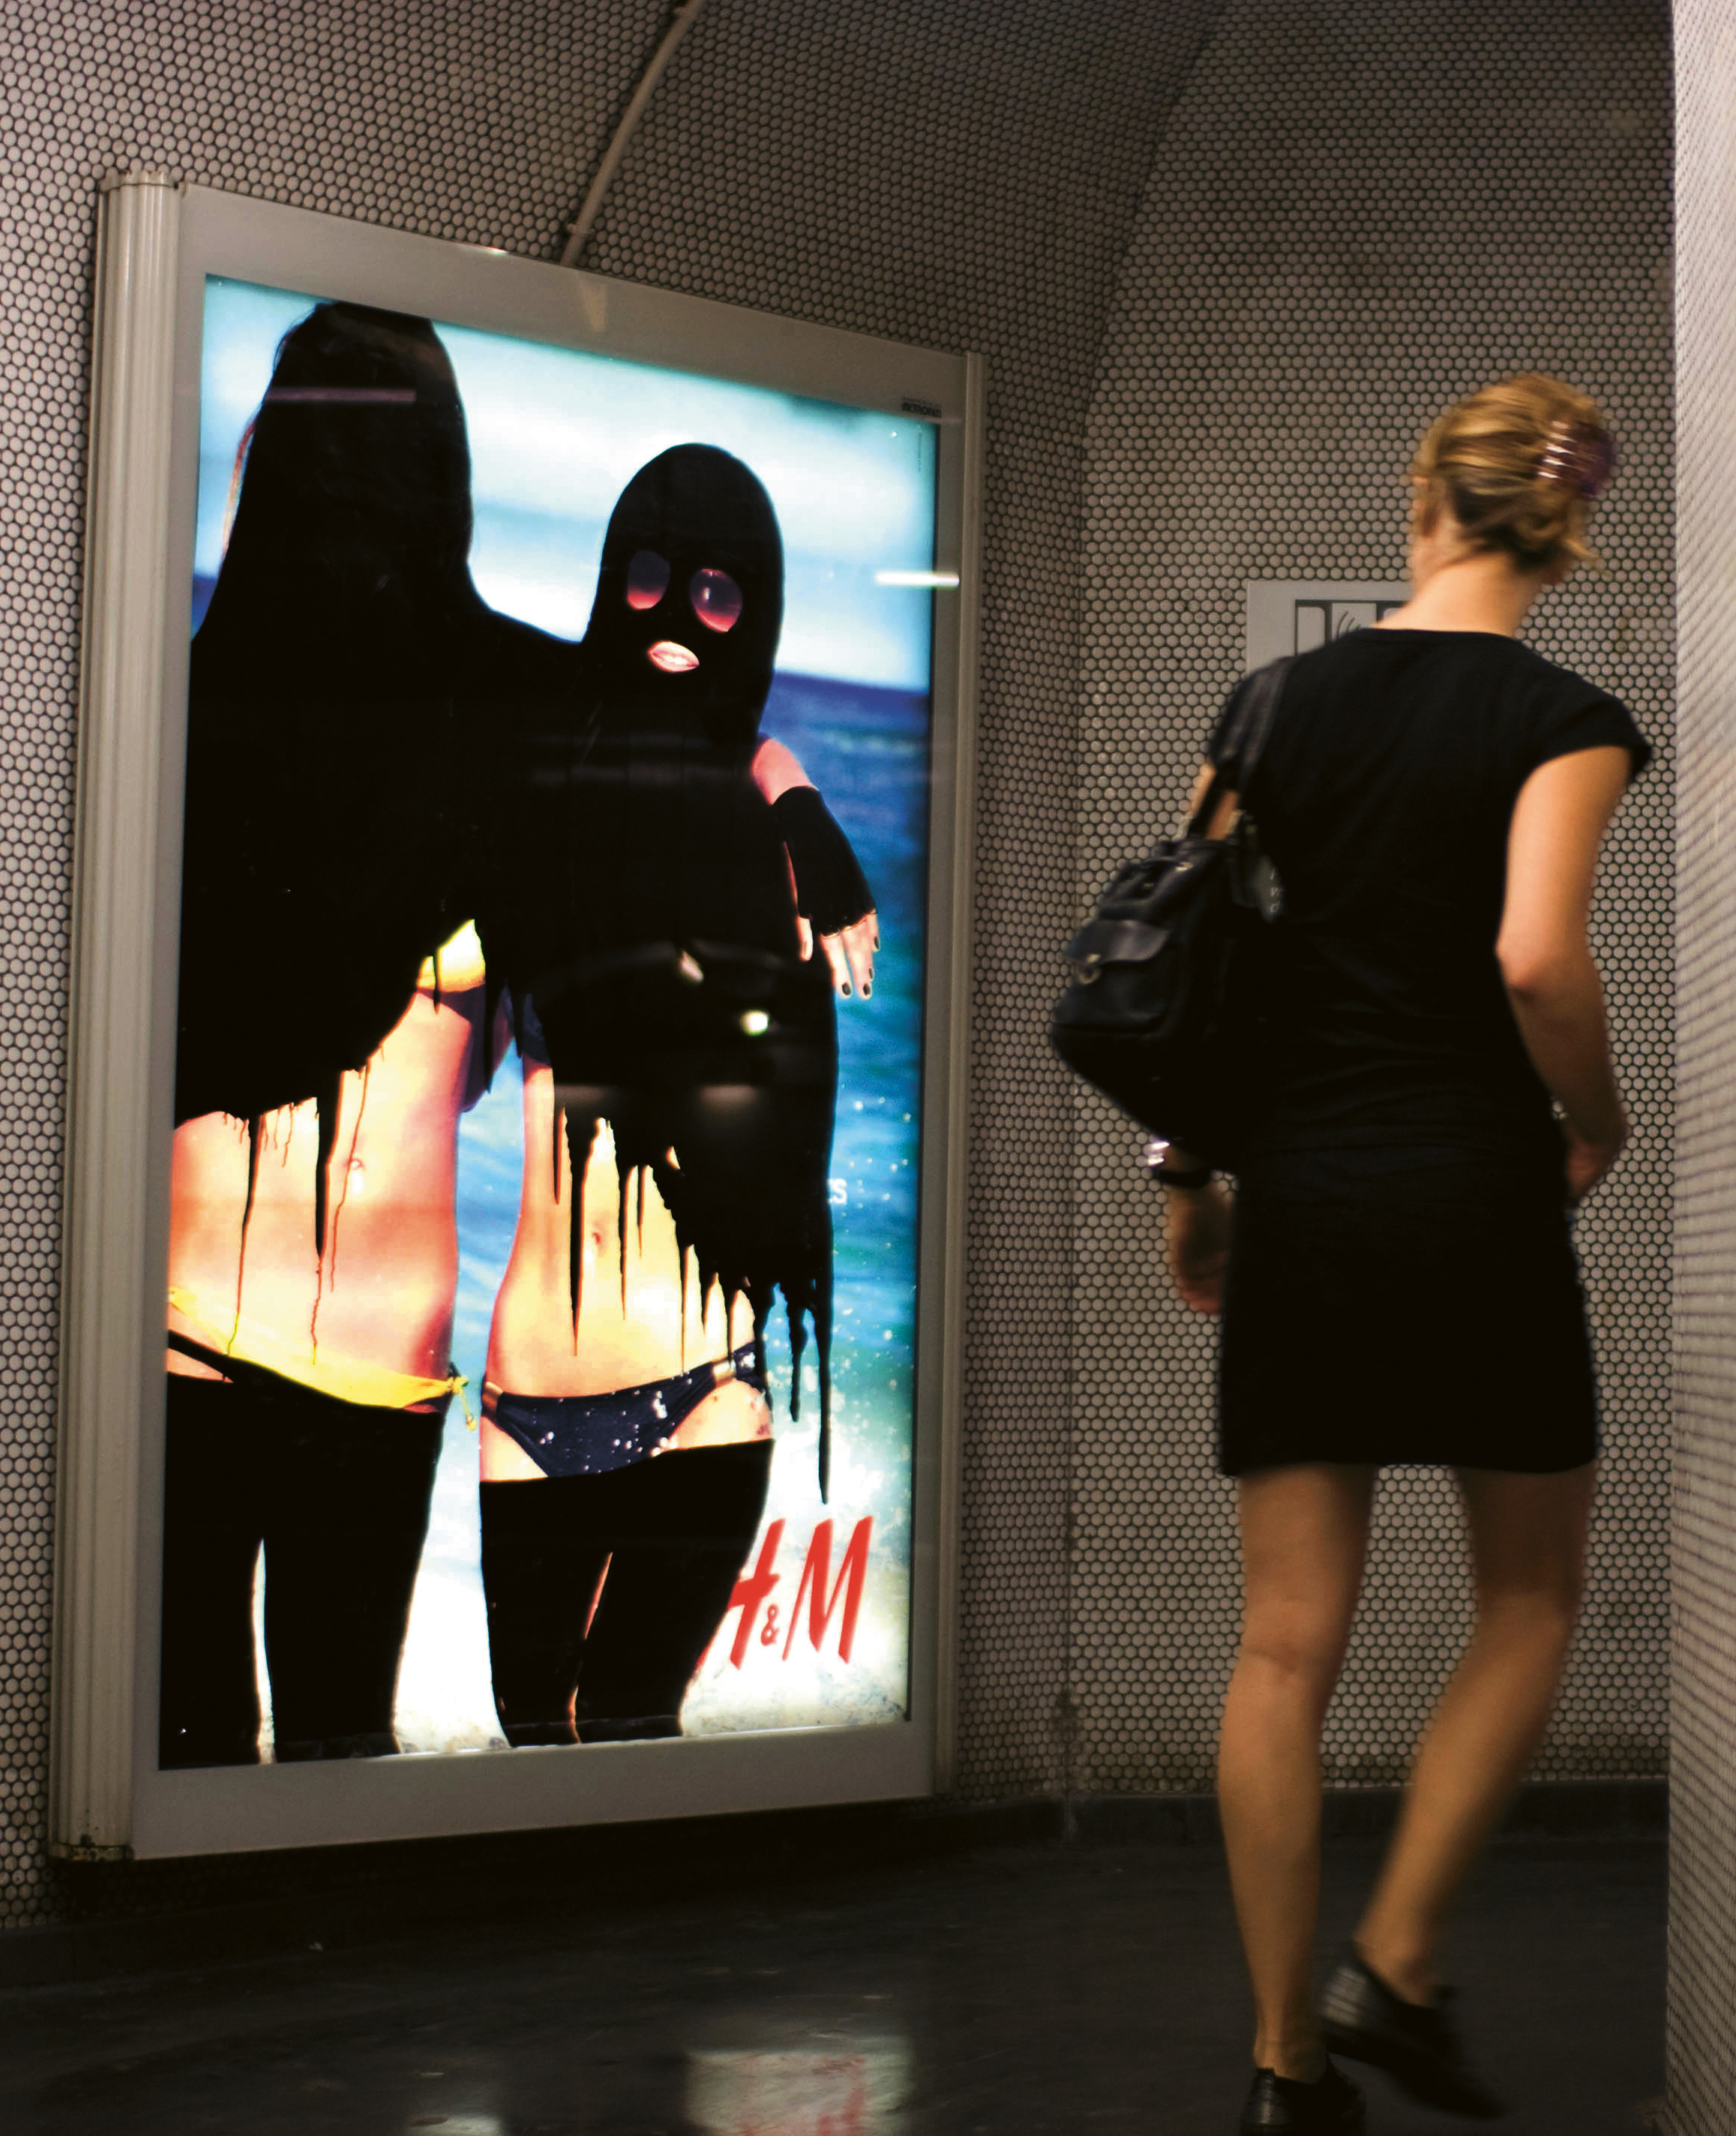 'Hijabizing' intervention in the Paris Metro by Princess Hijab, France, 2006-11. From Visual Impact (Phaidon, 2015)